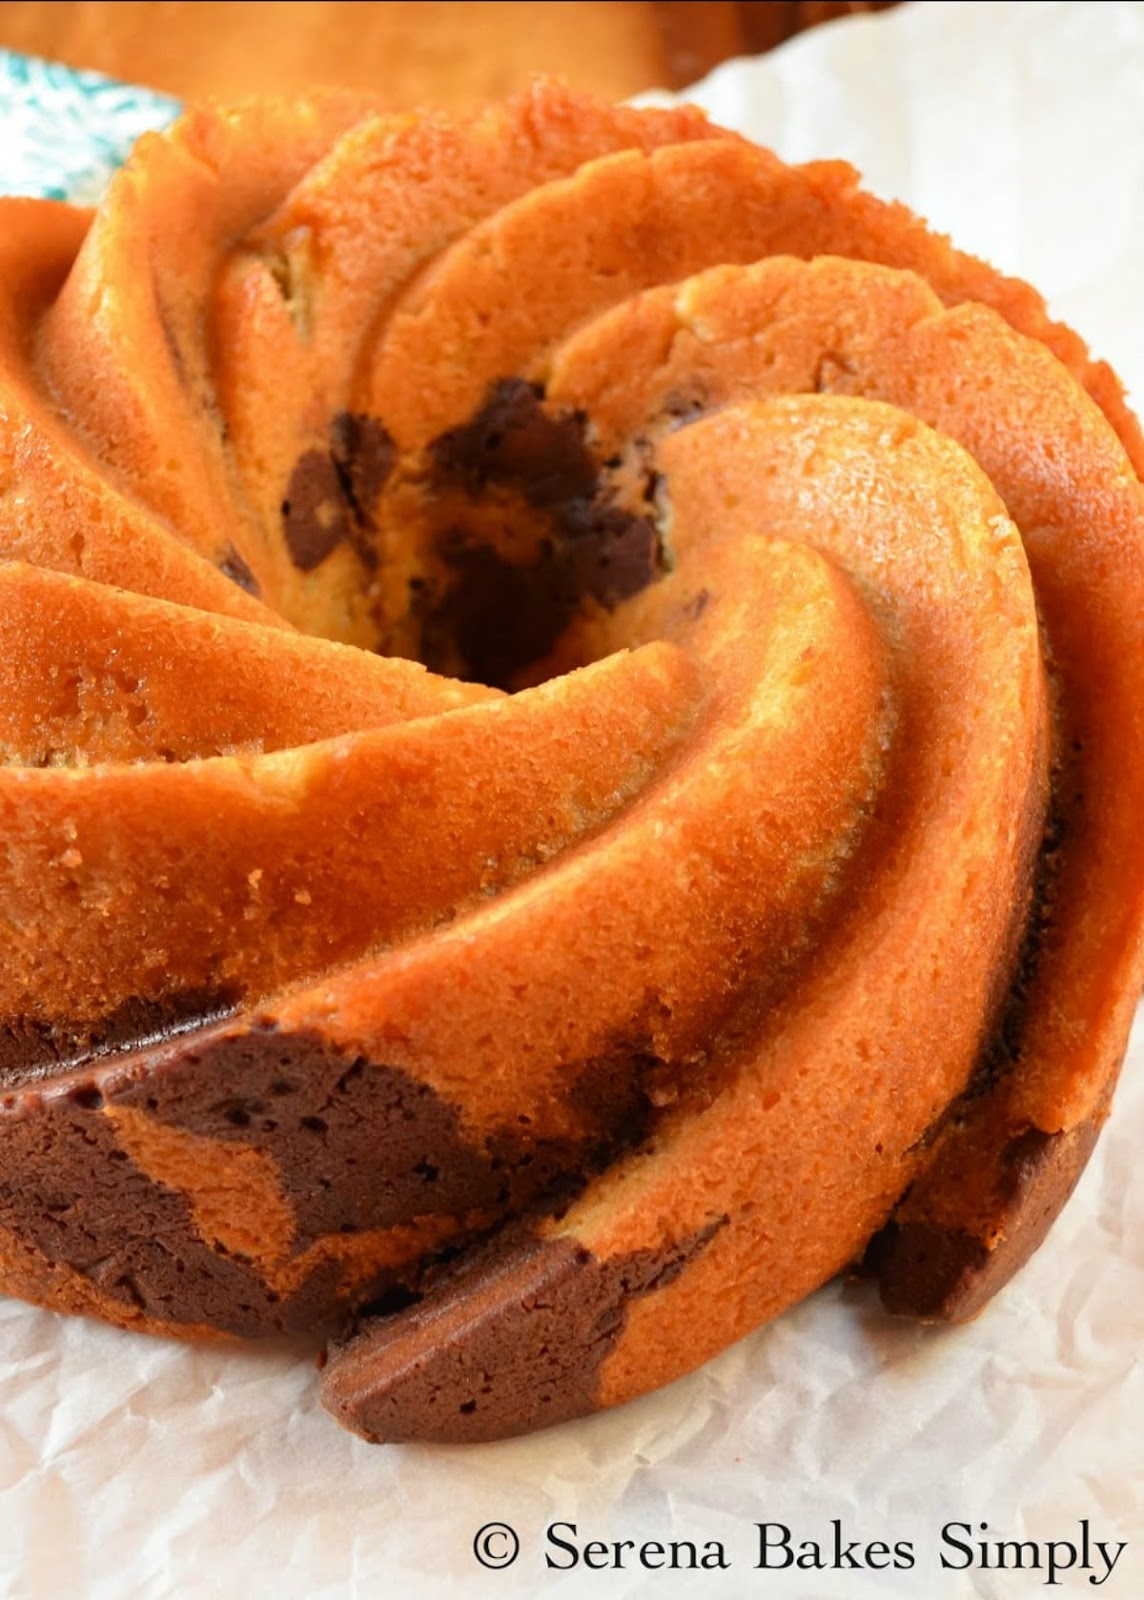 Buttermilk Marble Chocolate Bundt Cake recipe.